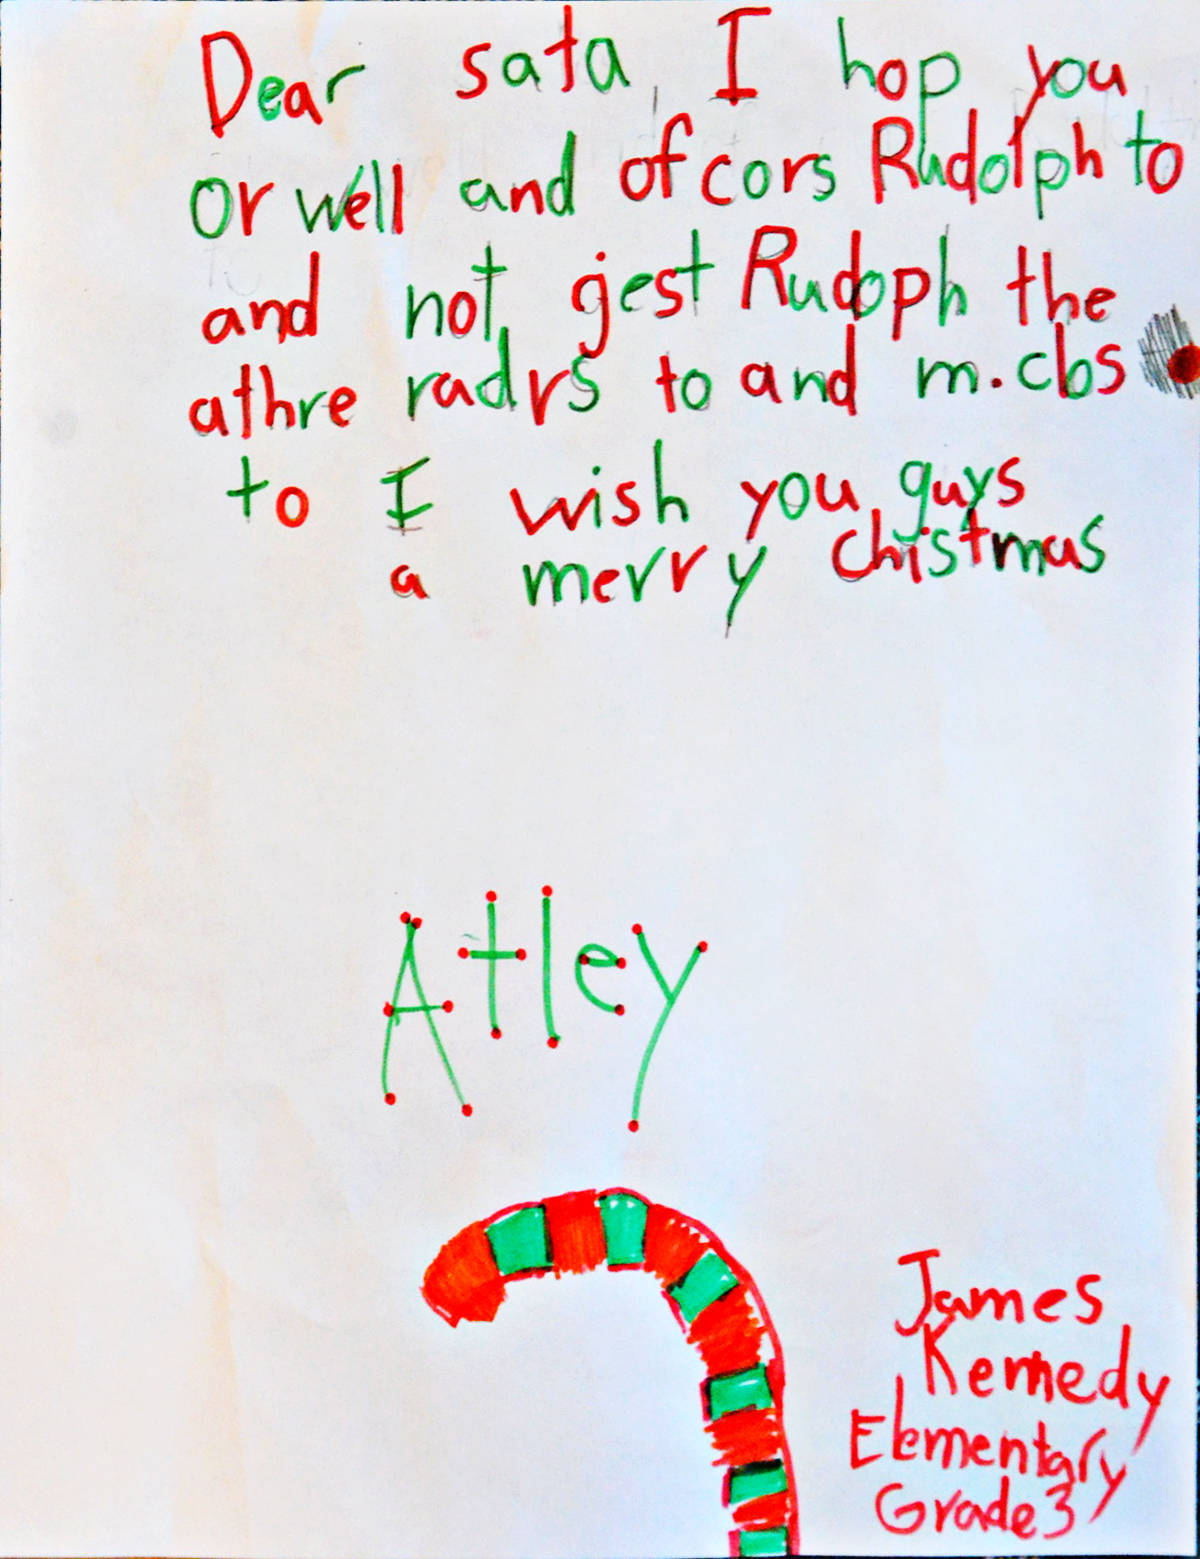 Atley, Grade 3, James Kennedy Elementary